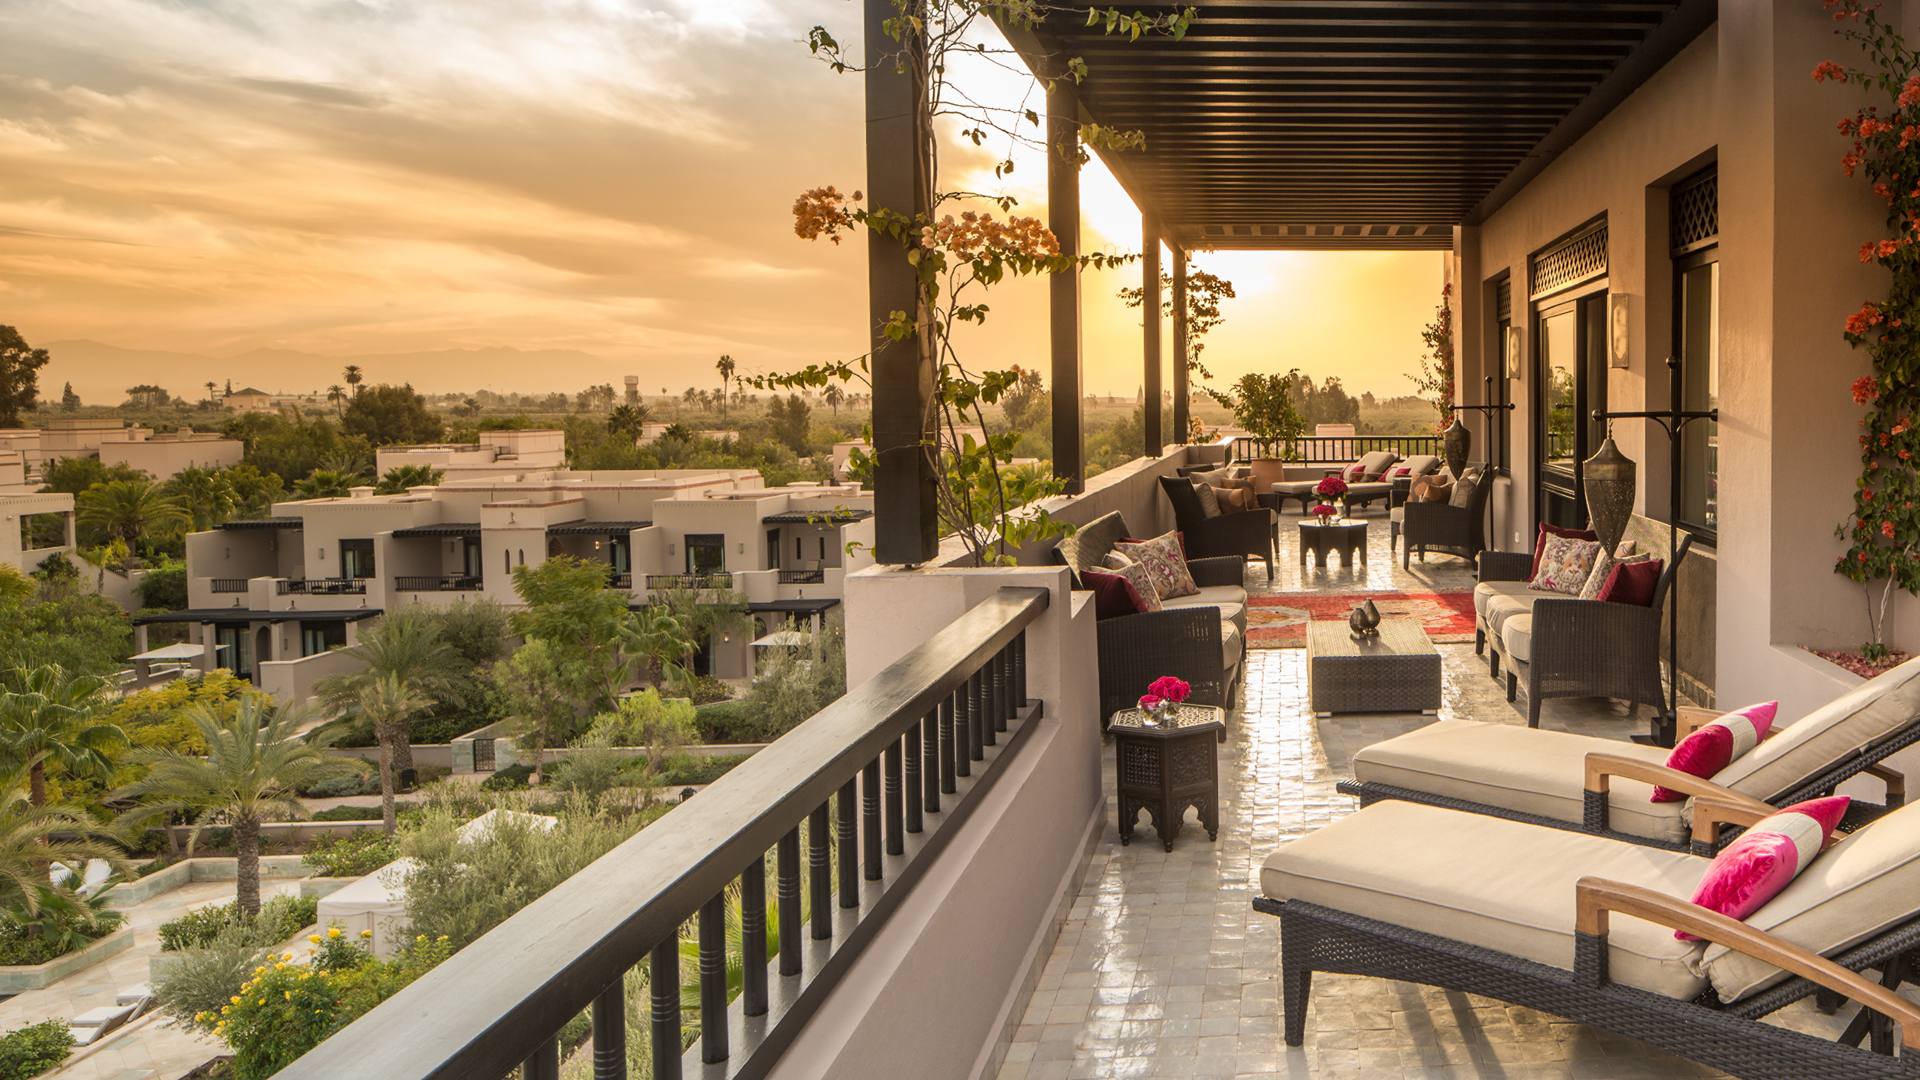 Presidential suite at Four Seasons Marrakech